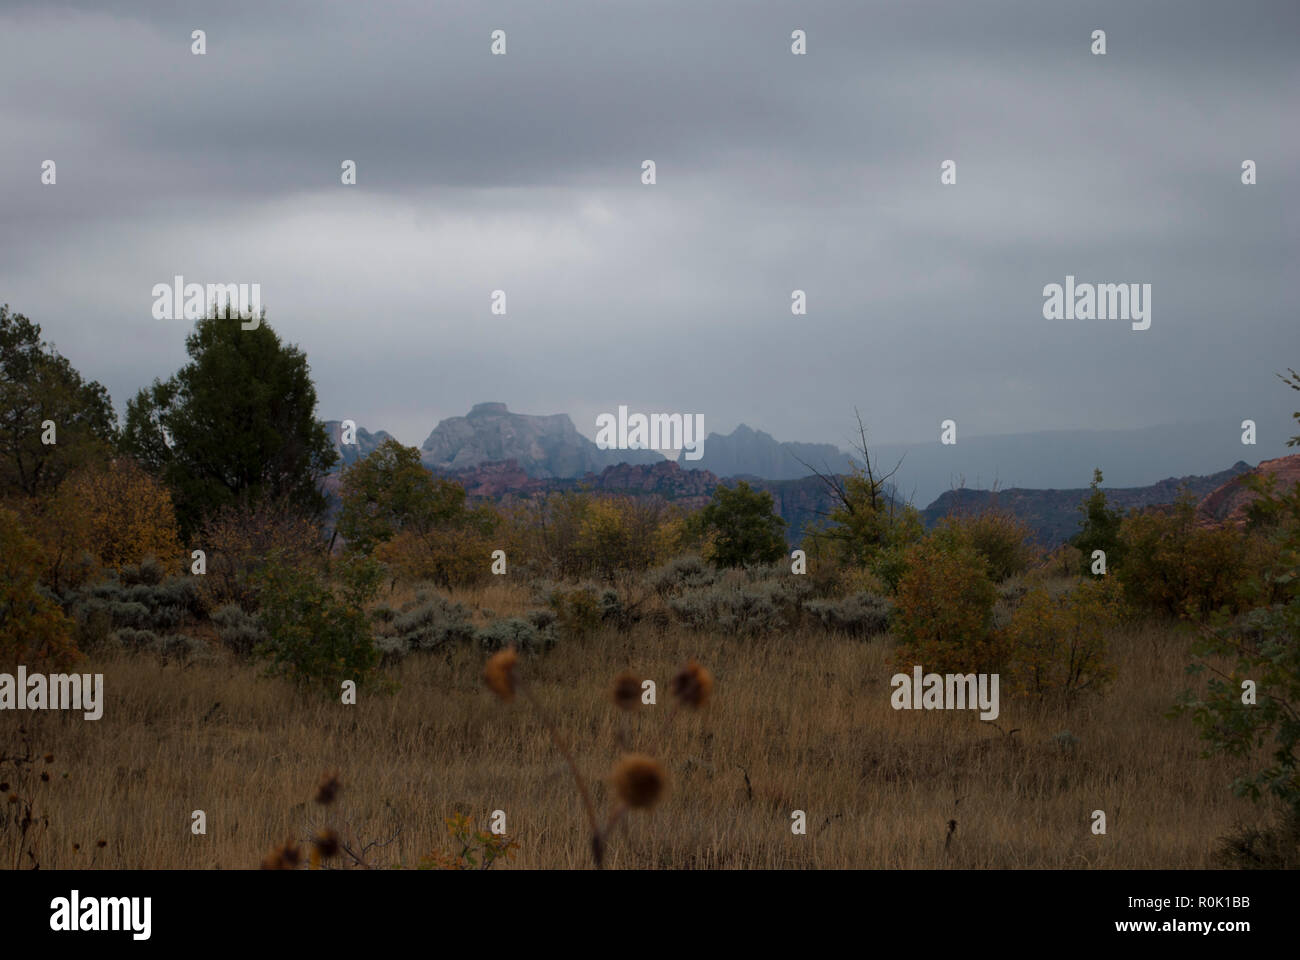 Rainy foggy day at mountains landscaped valley in autumn. Red, yellow colors of fall - Stock Image